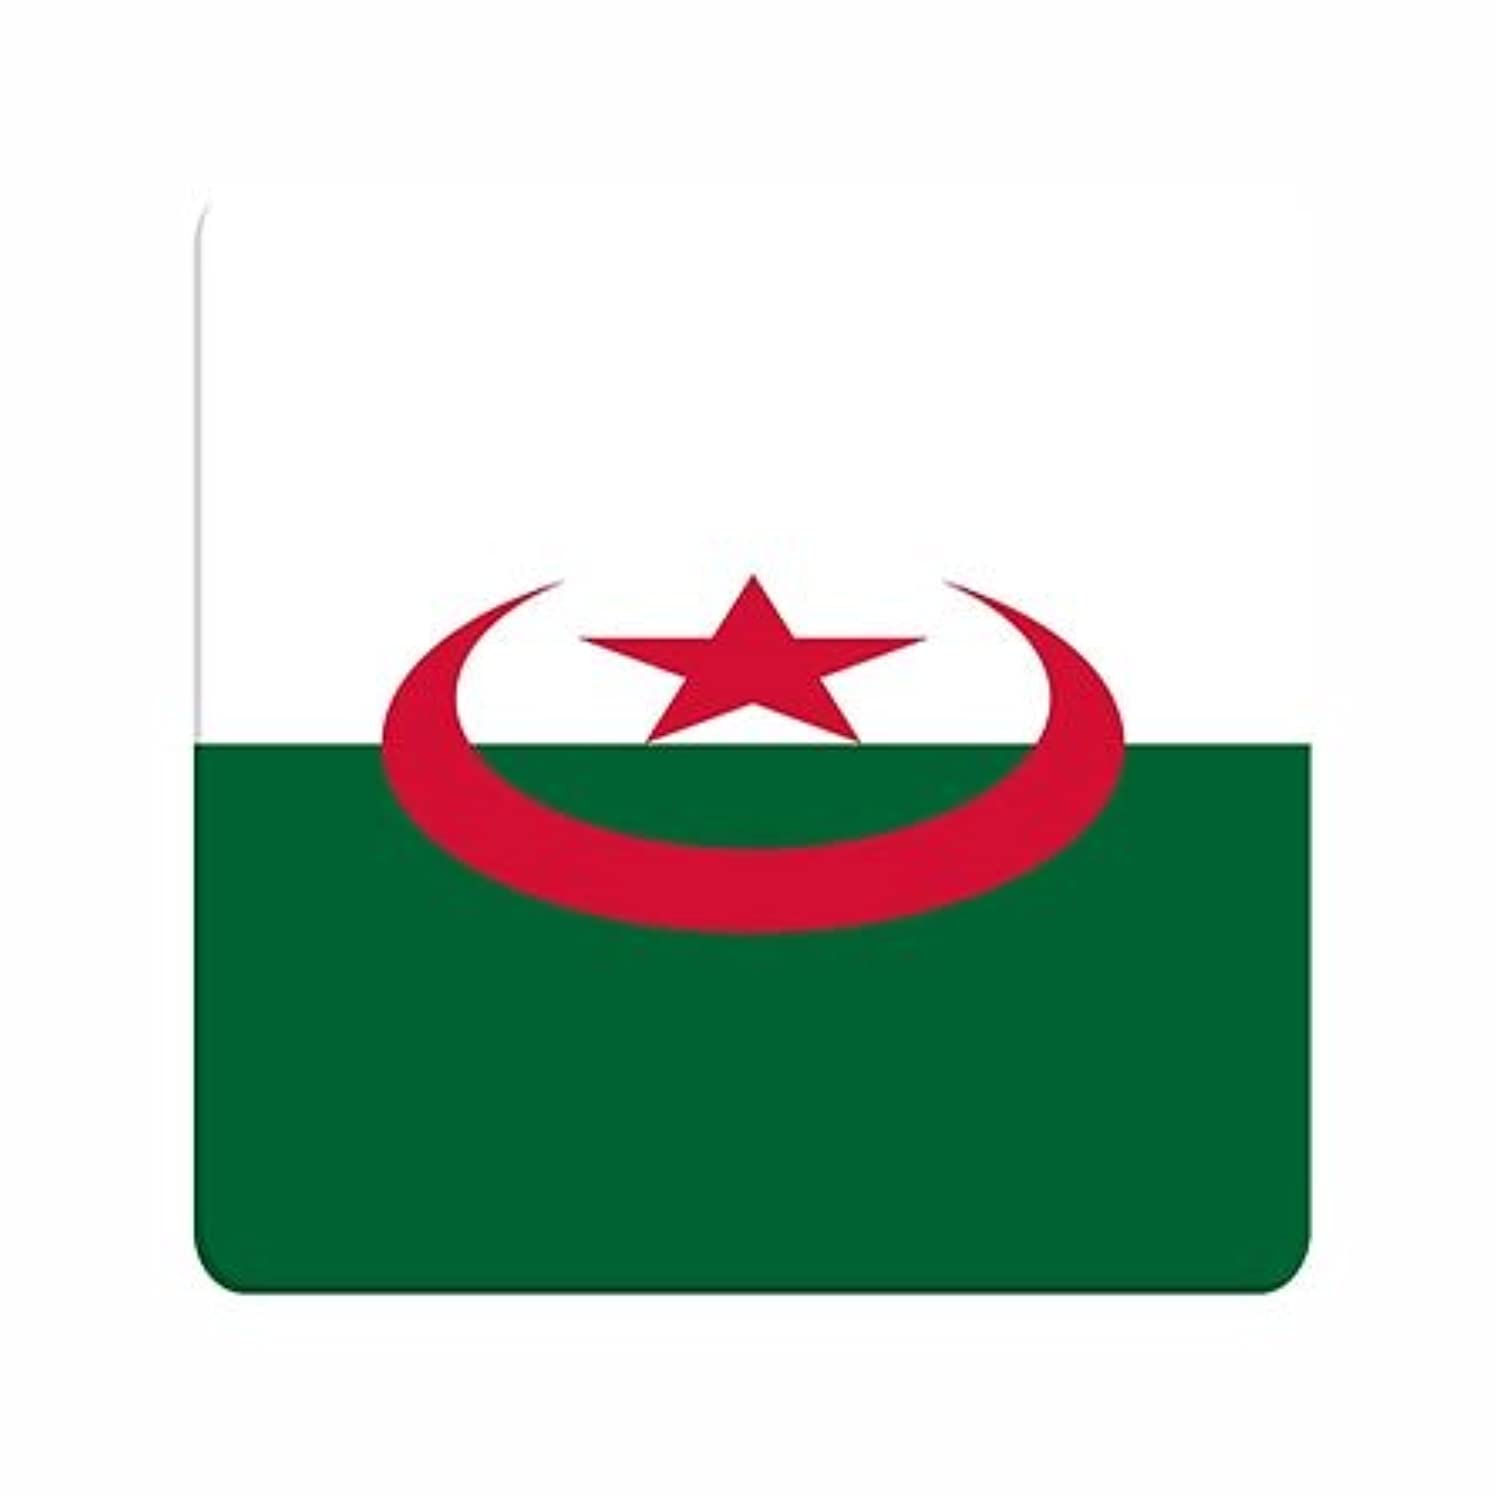 Fun Thin Material Mouse Pad National Flag Algeria/Algerian Personalised Creative For Boys